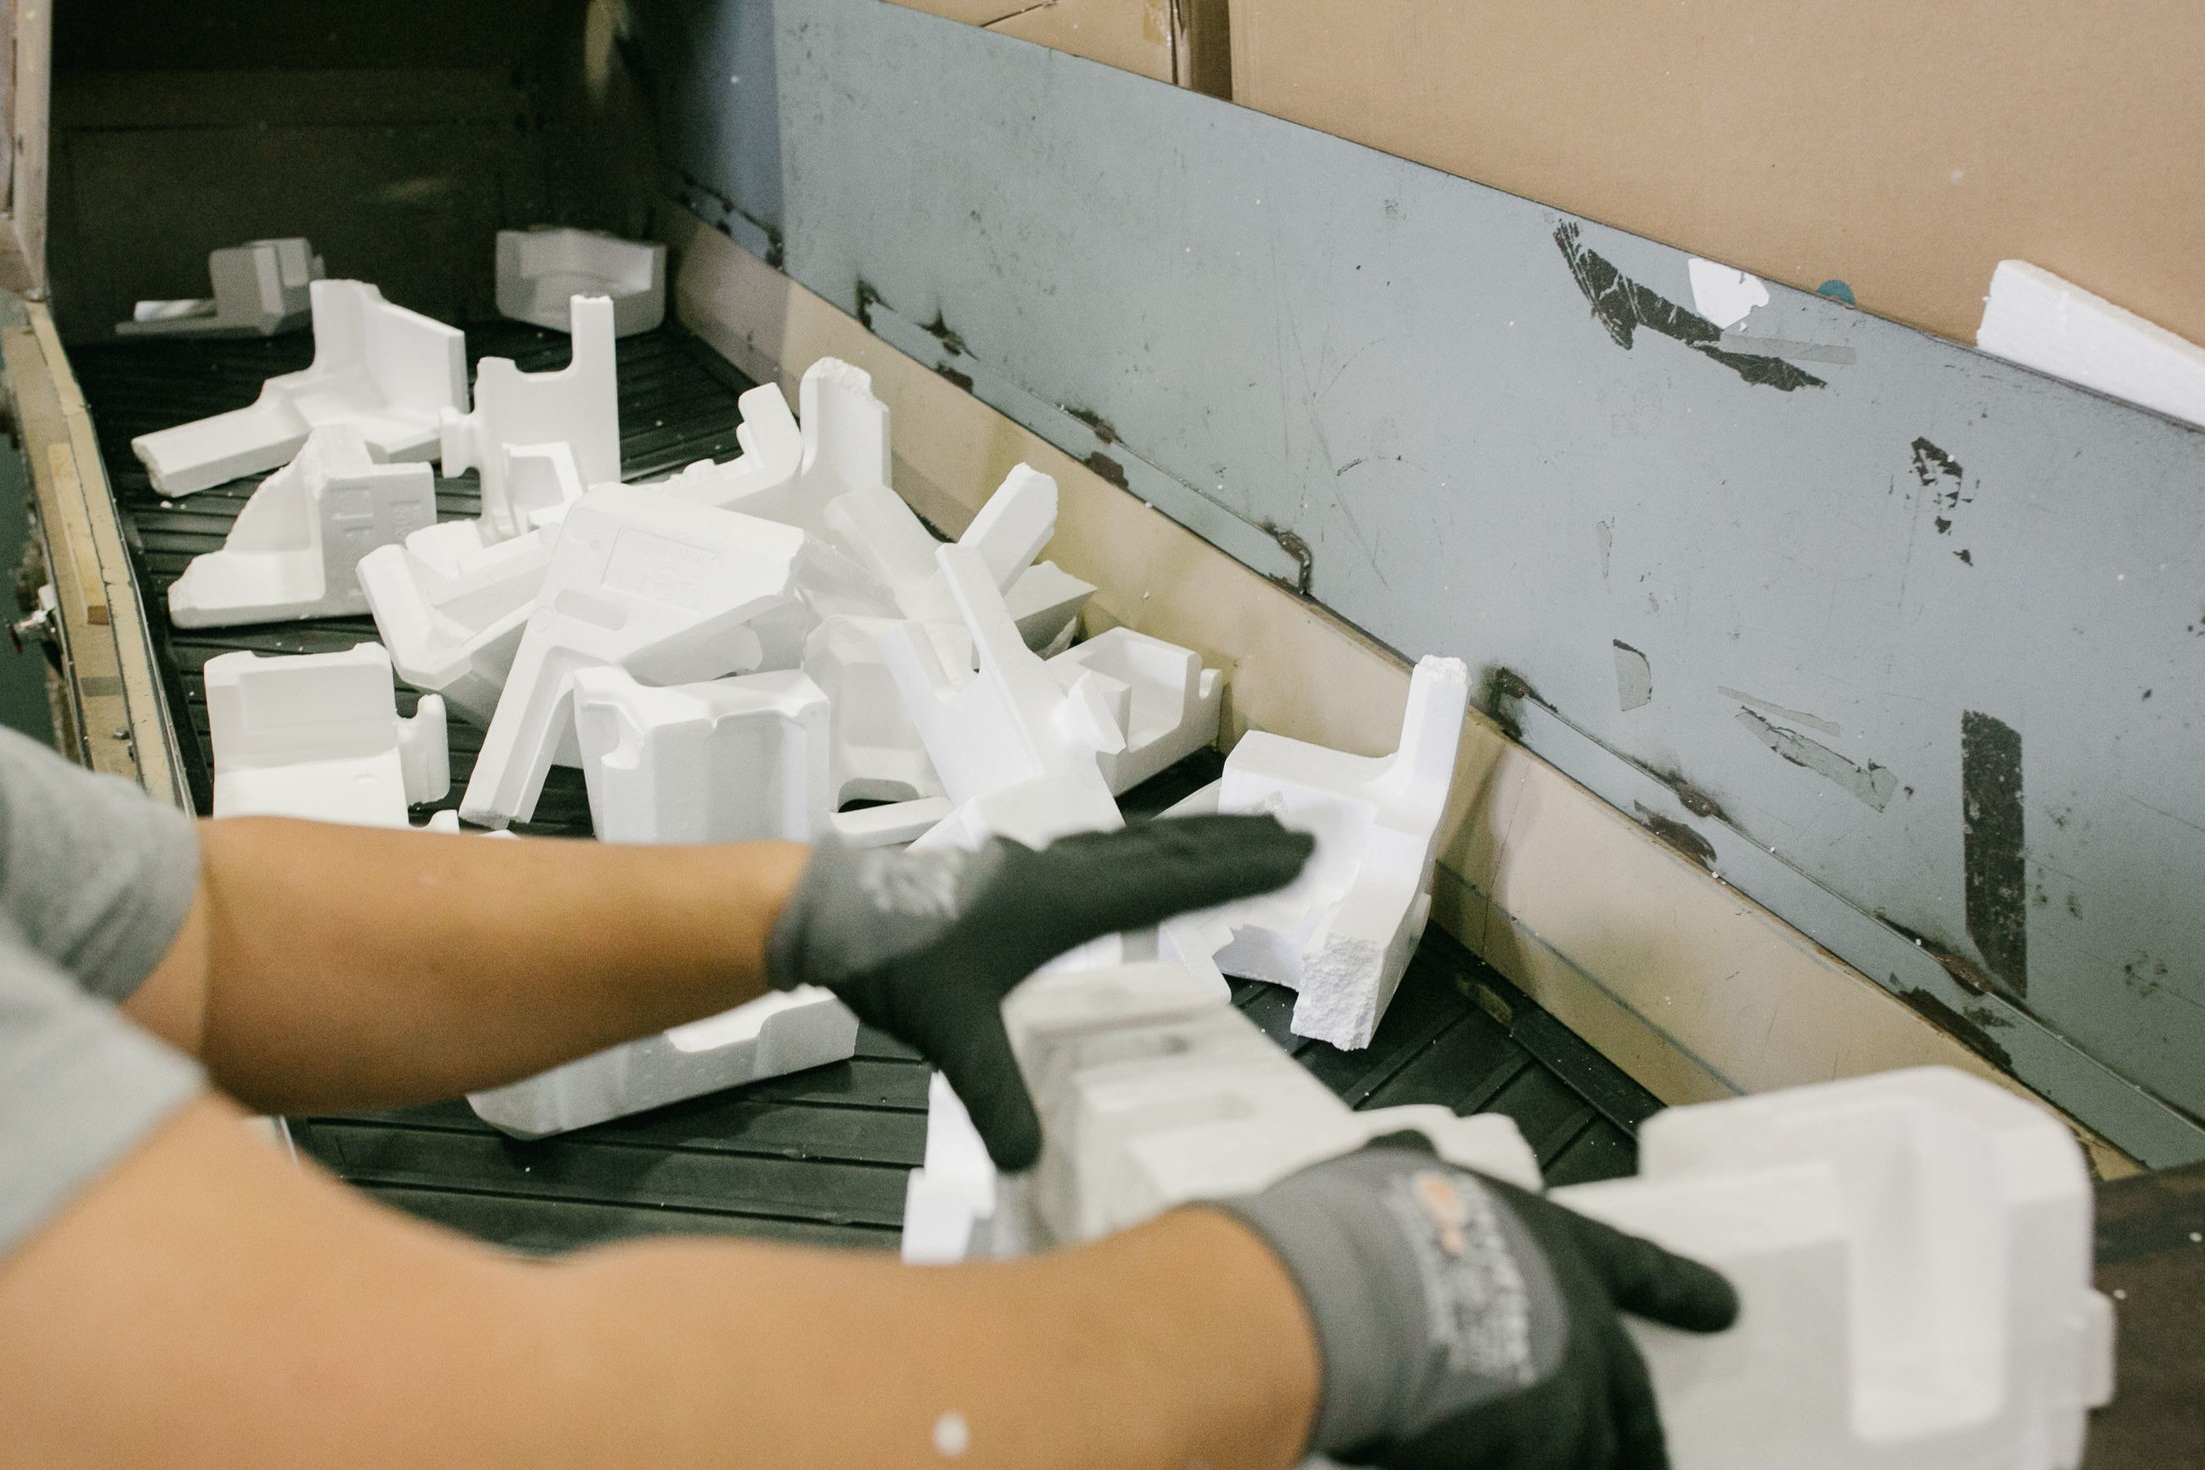 Regenyx employees send discarded polystyrene foam through a machine designed to densify the foam for processing.